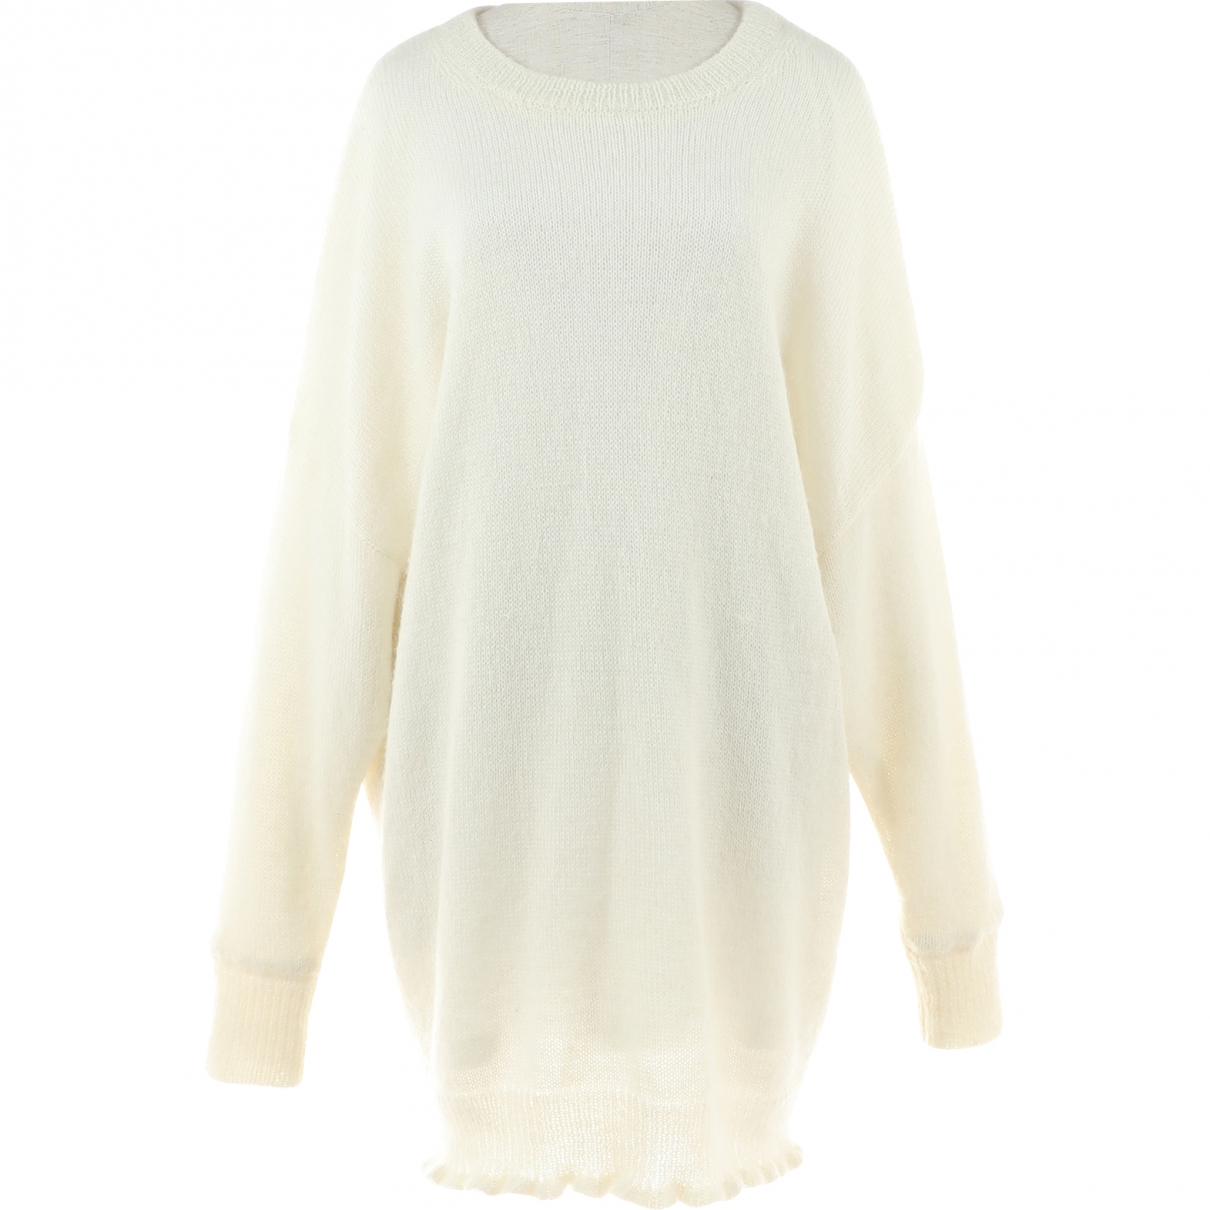 Maison Martin Margiela \N White Wool Knitwear for Women 38 FR